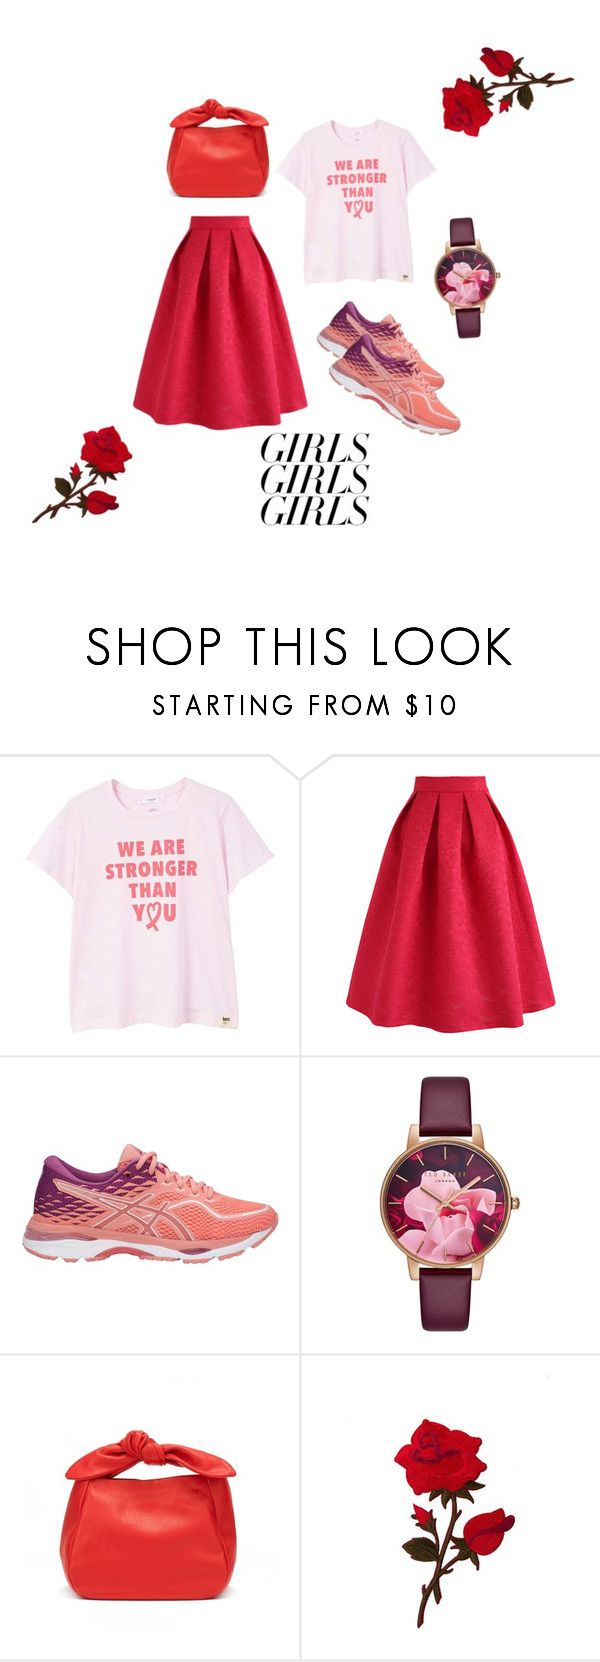 """""""Red as rifampicin effect to body fluid"""" by naayuningtyas ❤ liked on Polyvore featuring MANGO, Chicwish, Asics, Ted Baker, womensHistoryMonth, pressforprogress and GirlPride"""